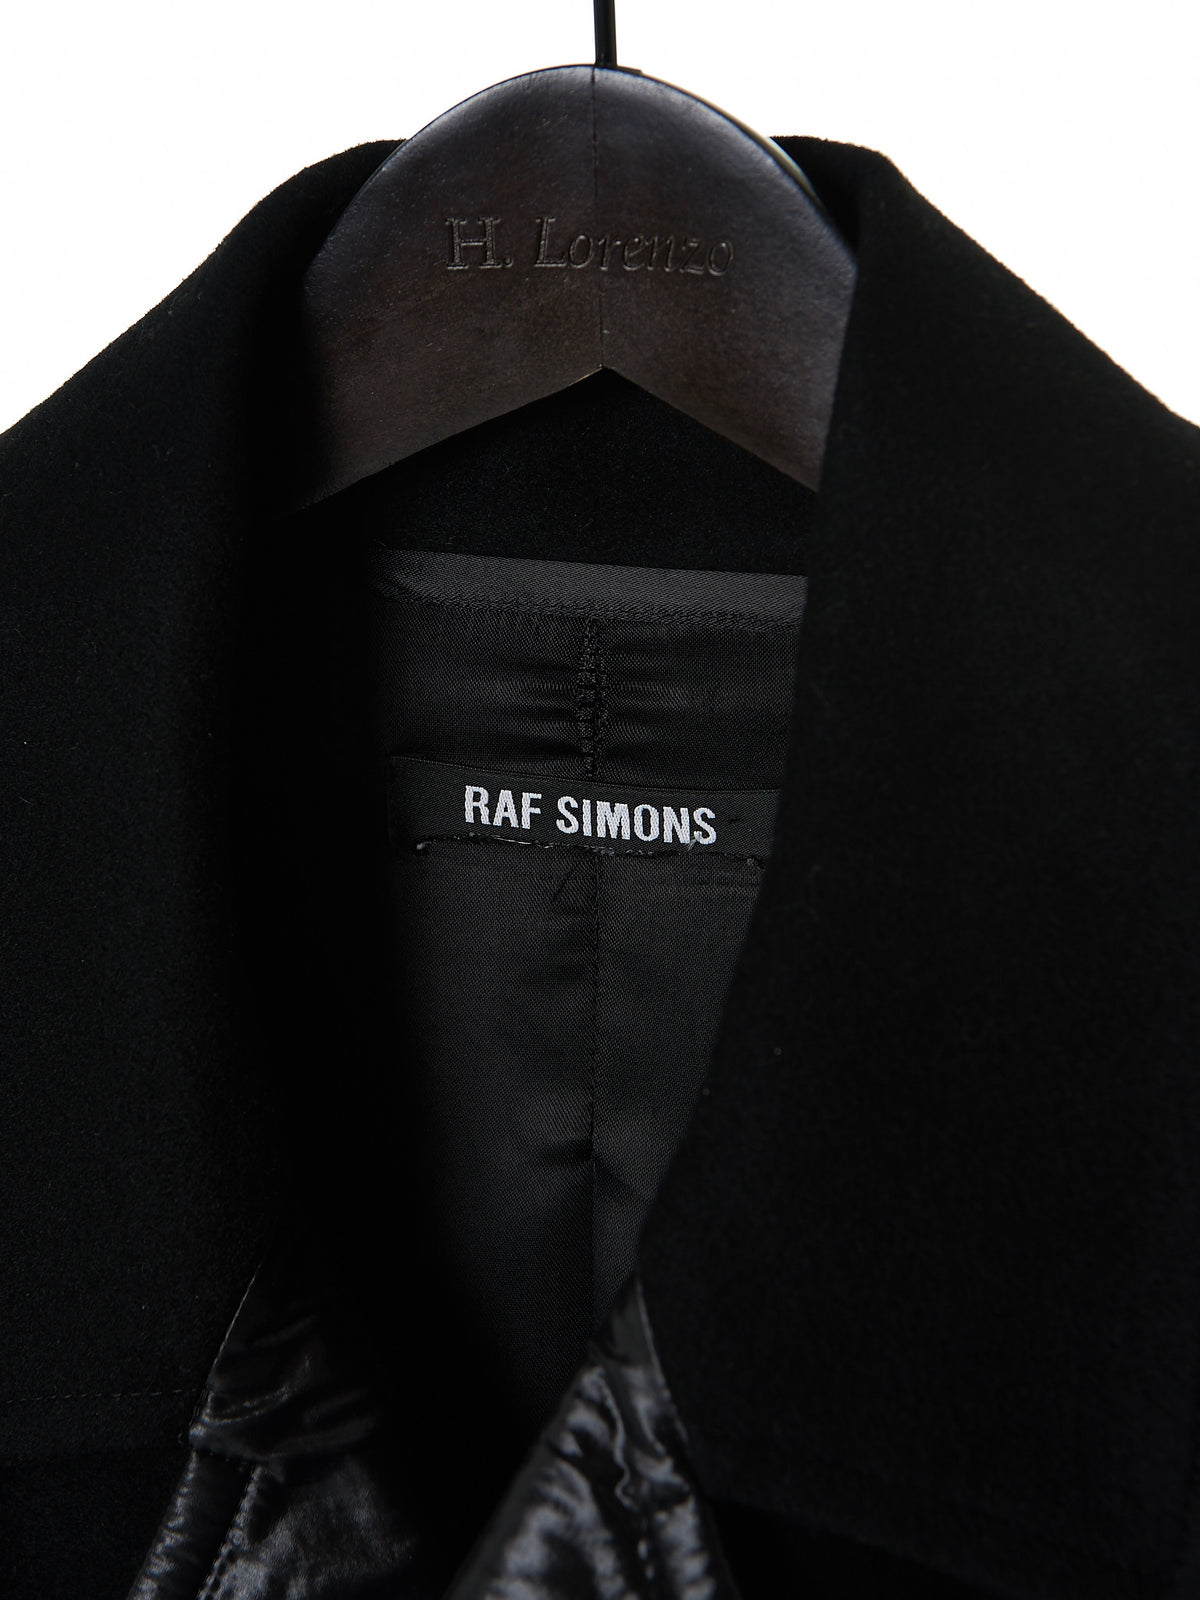 Raf Simons Nylon-Paneled Coat(0516-1248-BLACK) - H. Lorenzo